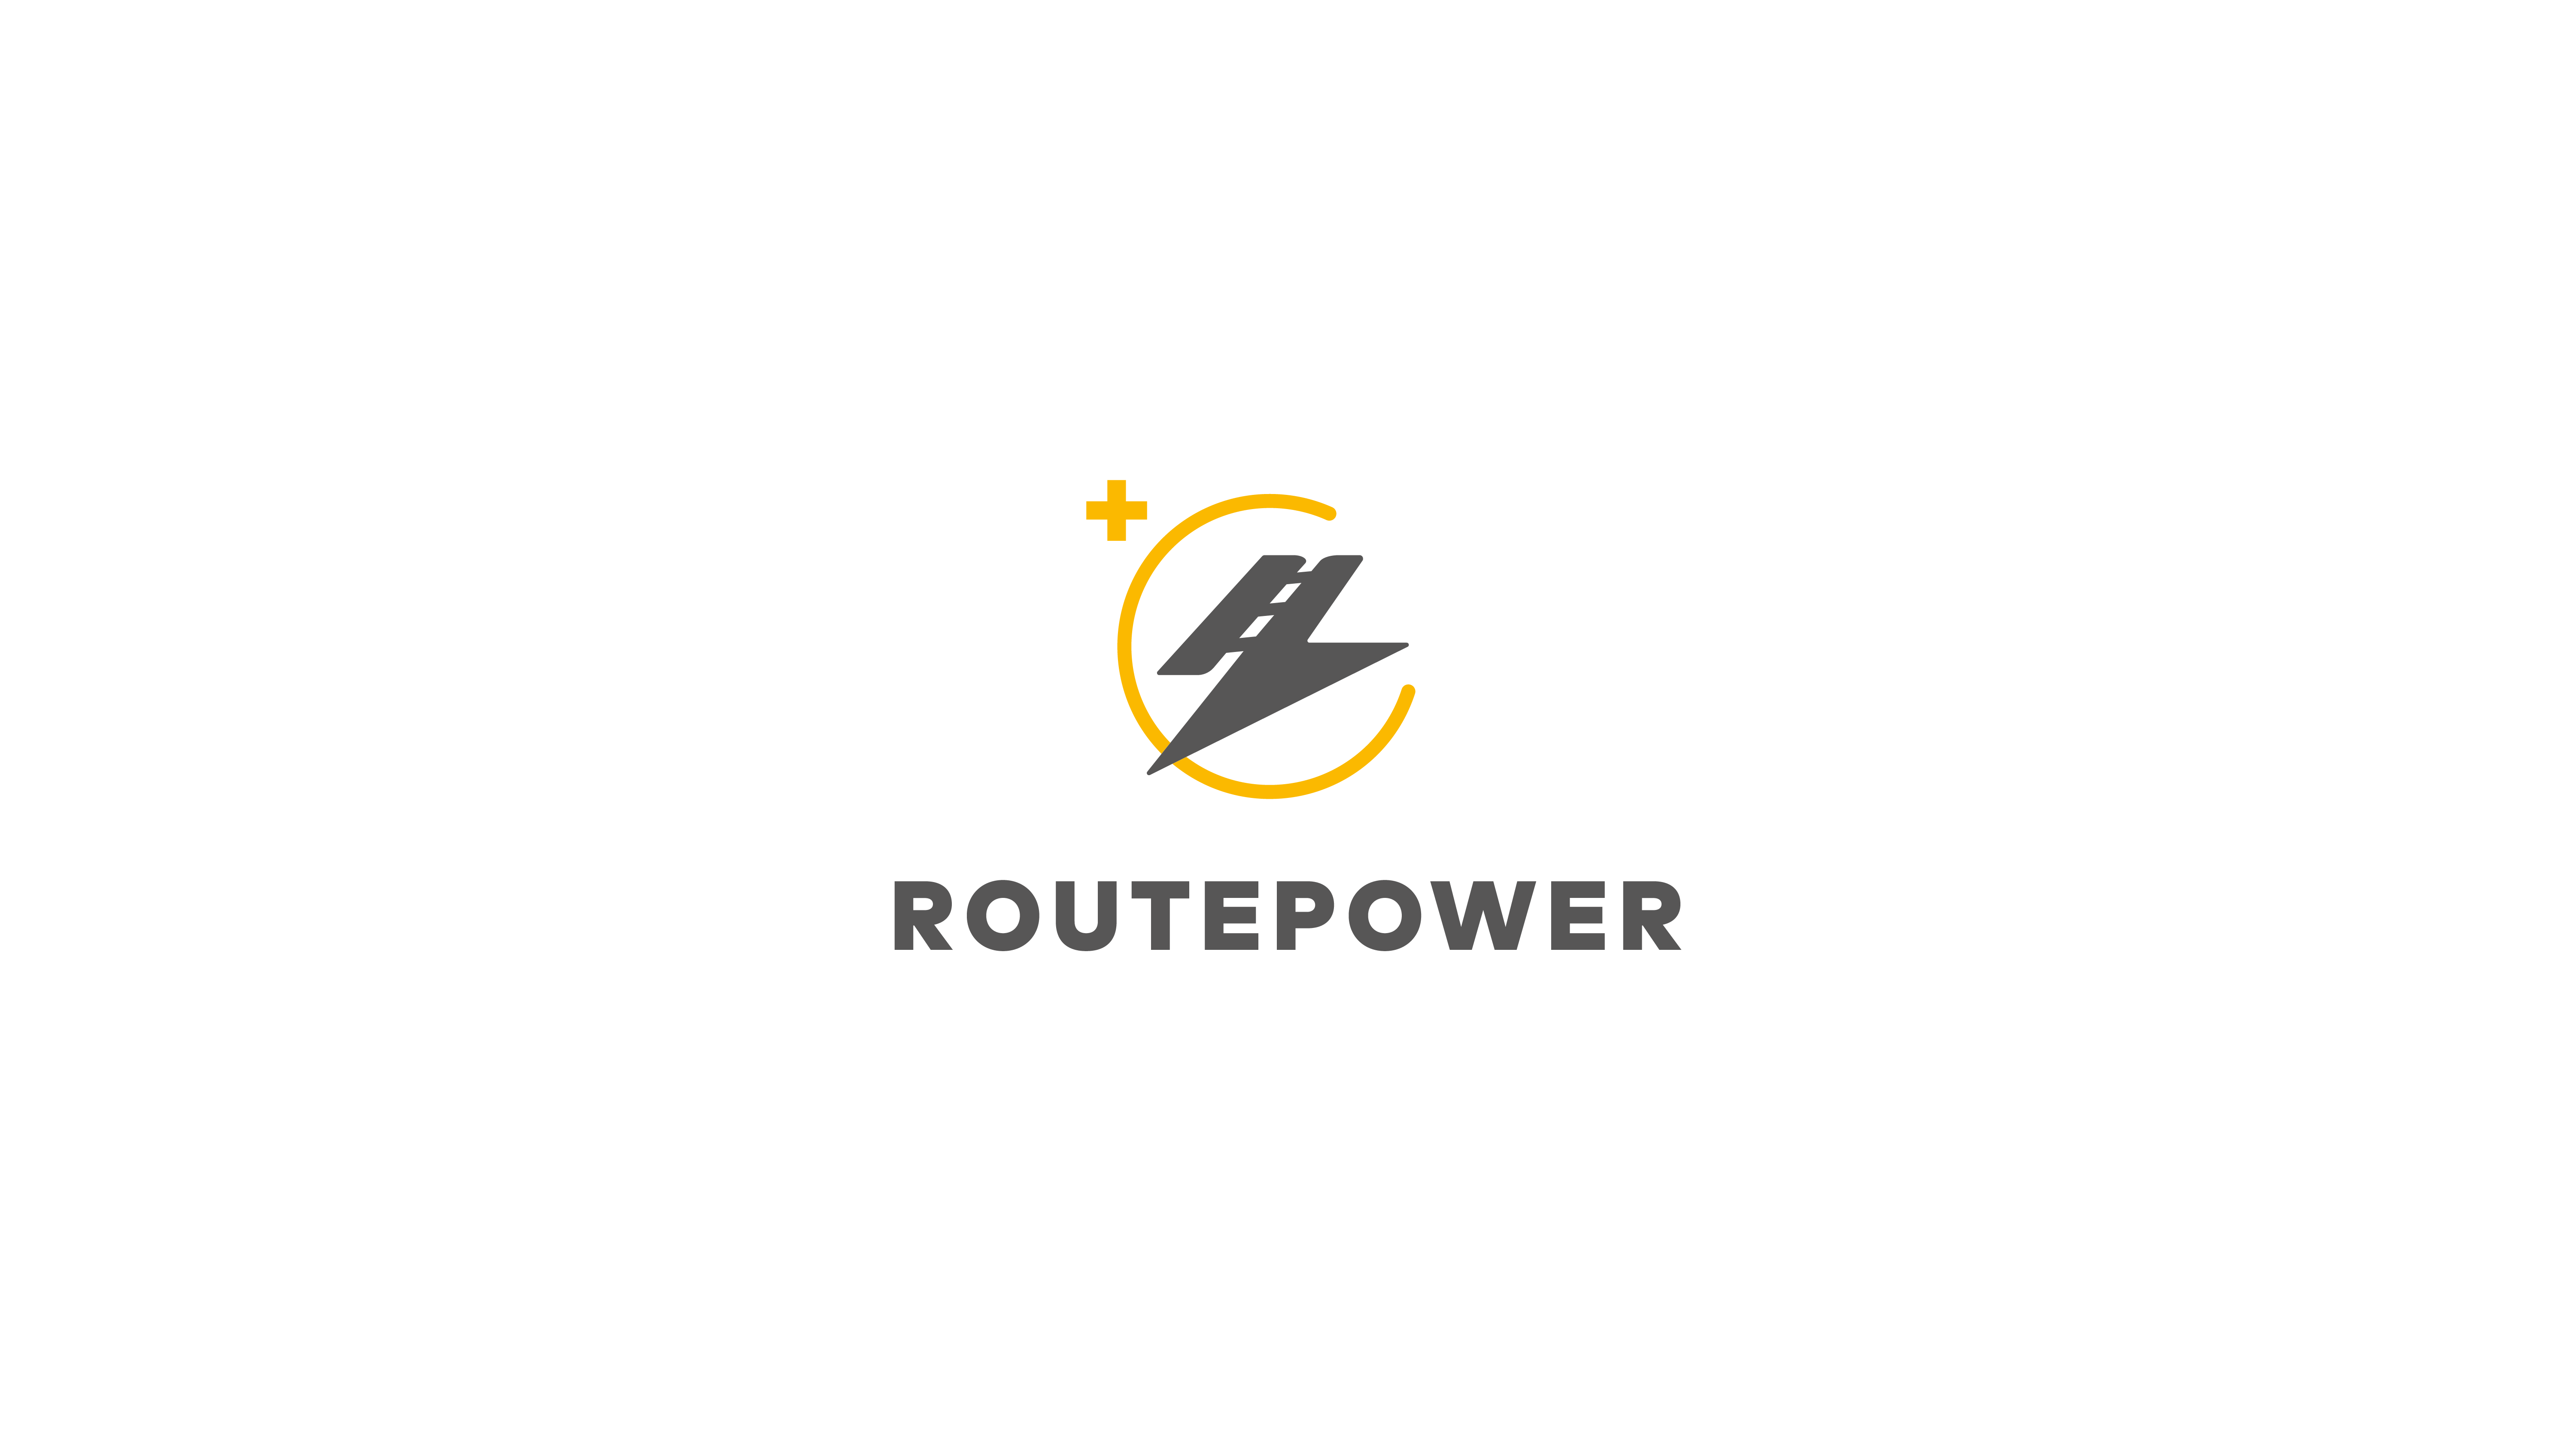 New Branding for Routepower